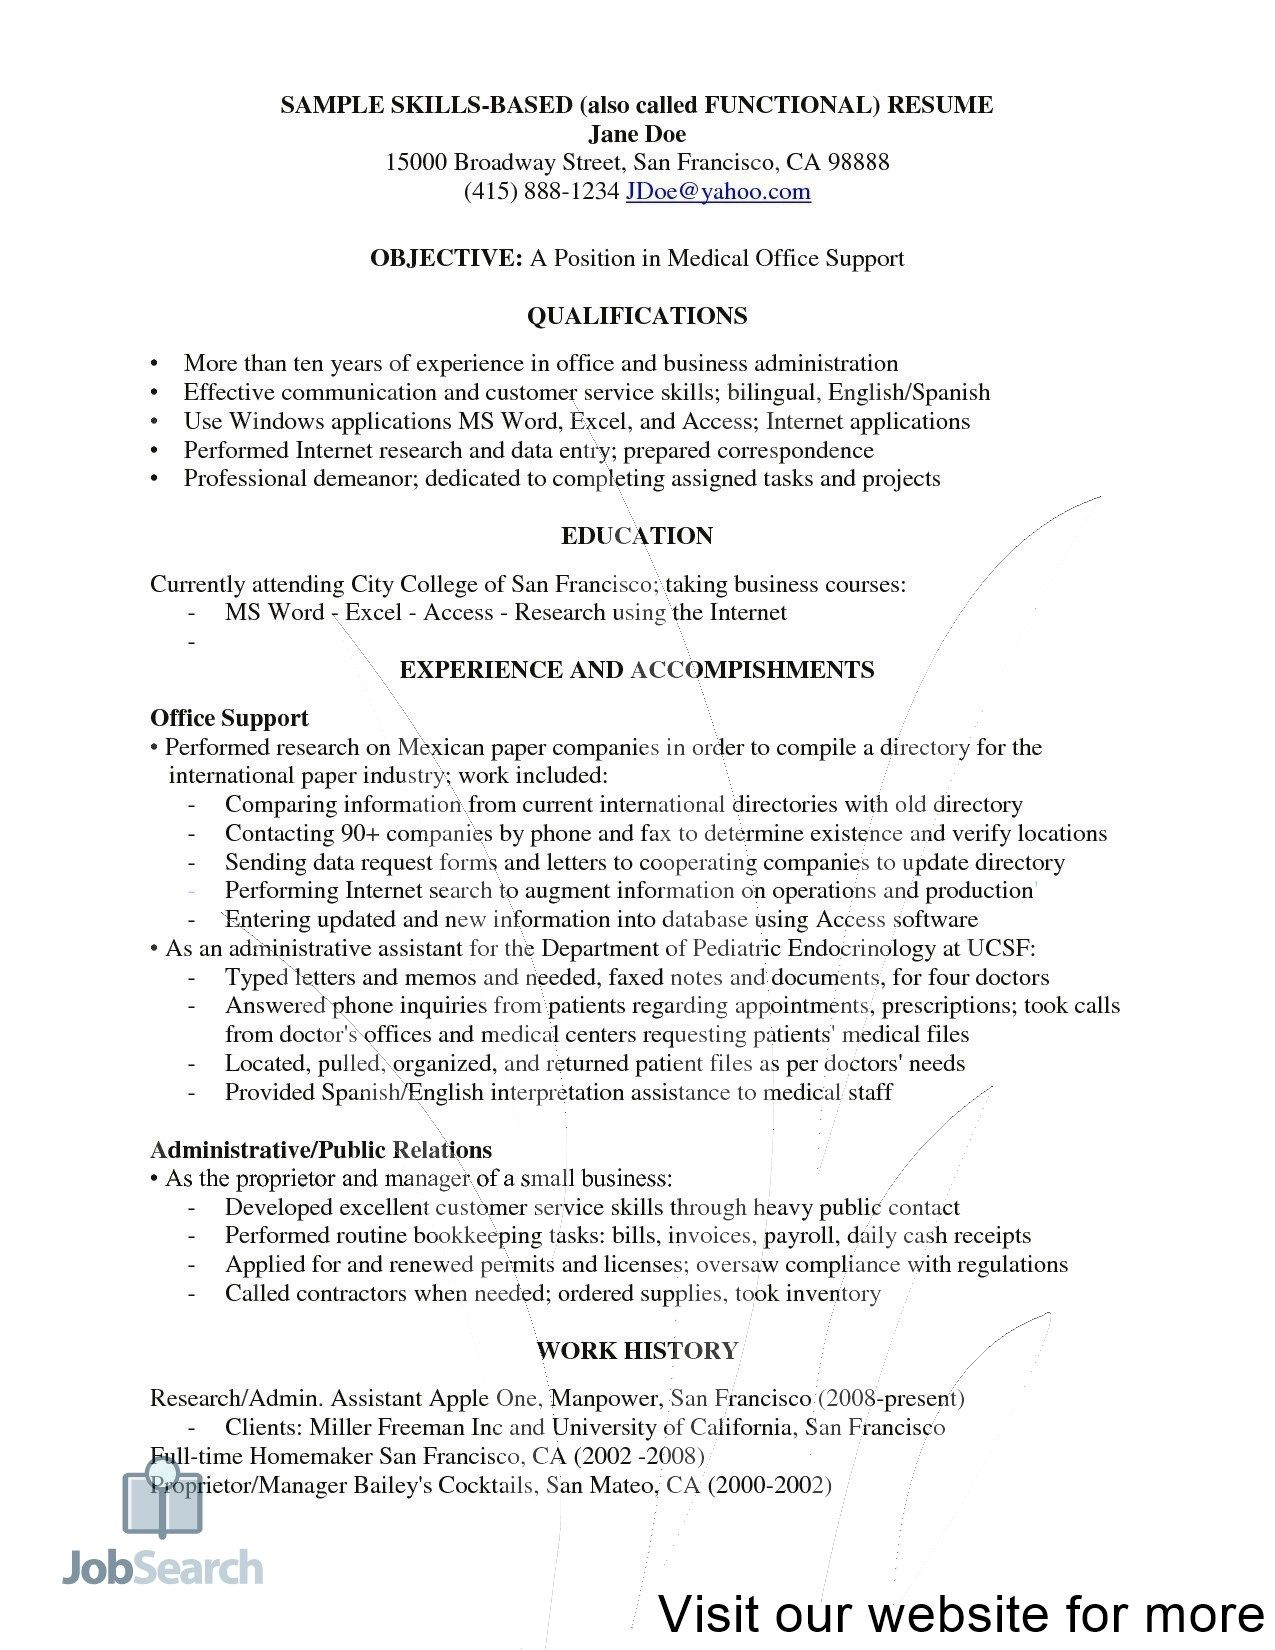 resume template apple Professional in 2020 Resume